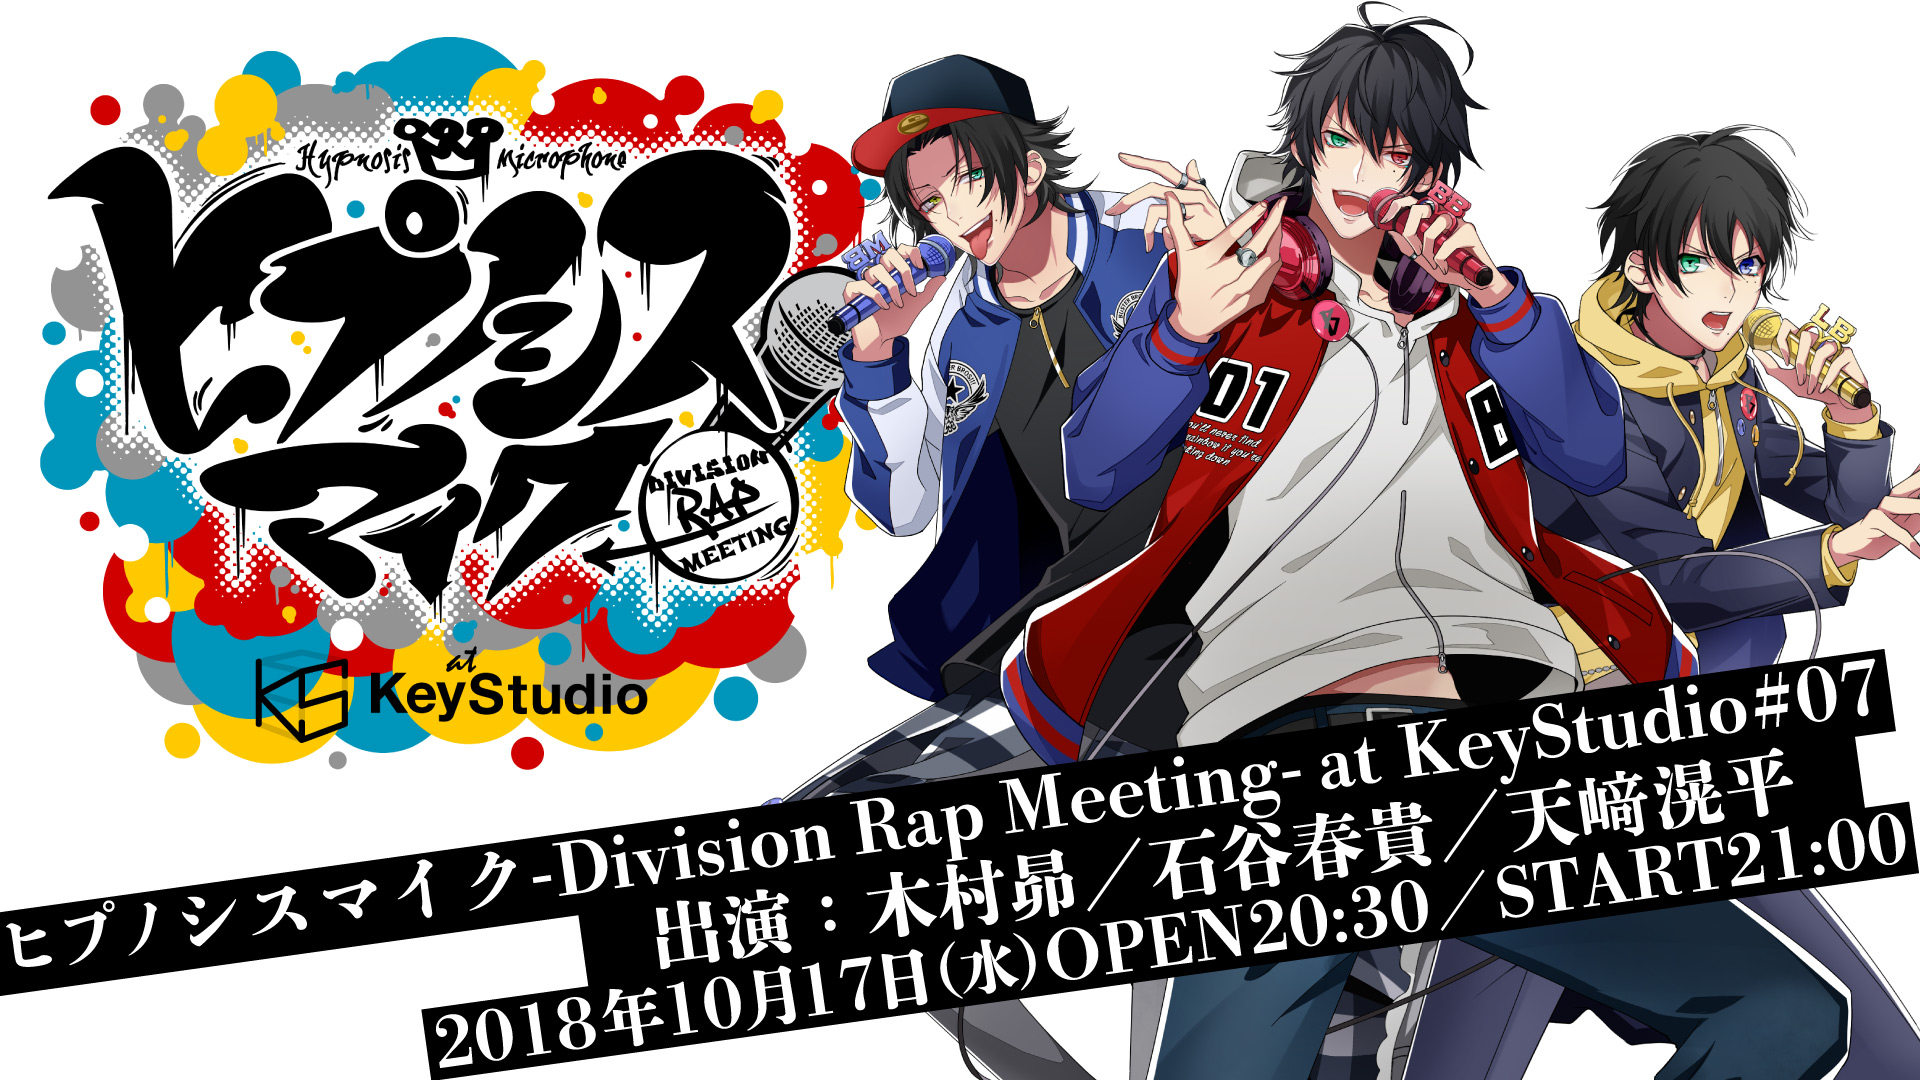 ヒプノシスマイク -Division Rap Meeting- at KeyStudio #07